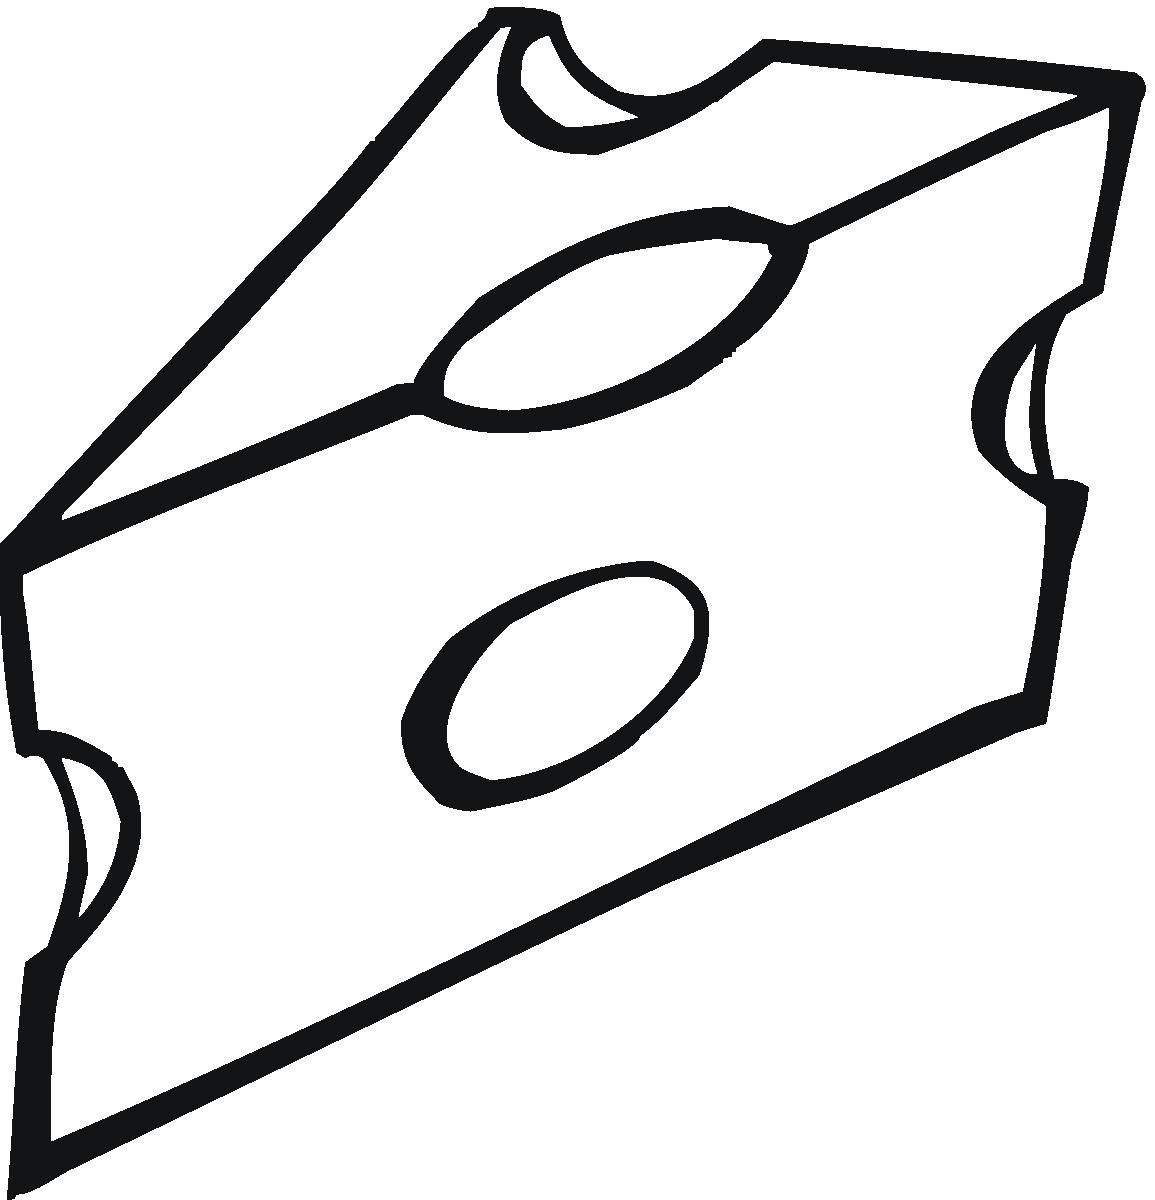 Clip Art Milk Carton Coloring Page dairy coloring page az pages tasty and milky pages